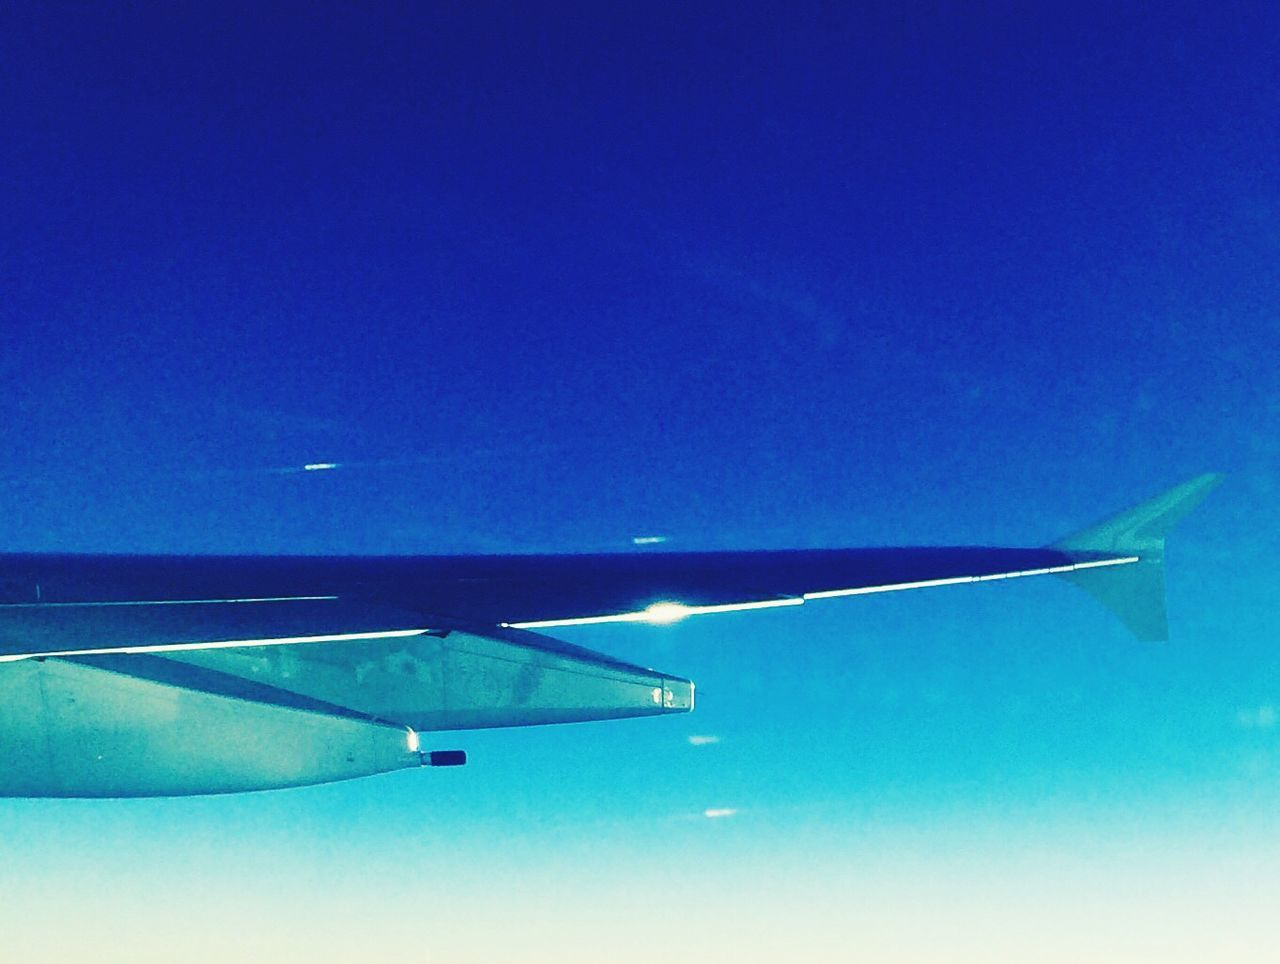 airplane, blue, transportation, no people, air vehicle, outdoors, low angle view, sky, airplane wing, day, clear sky, nature